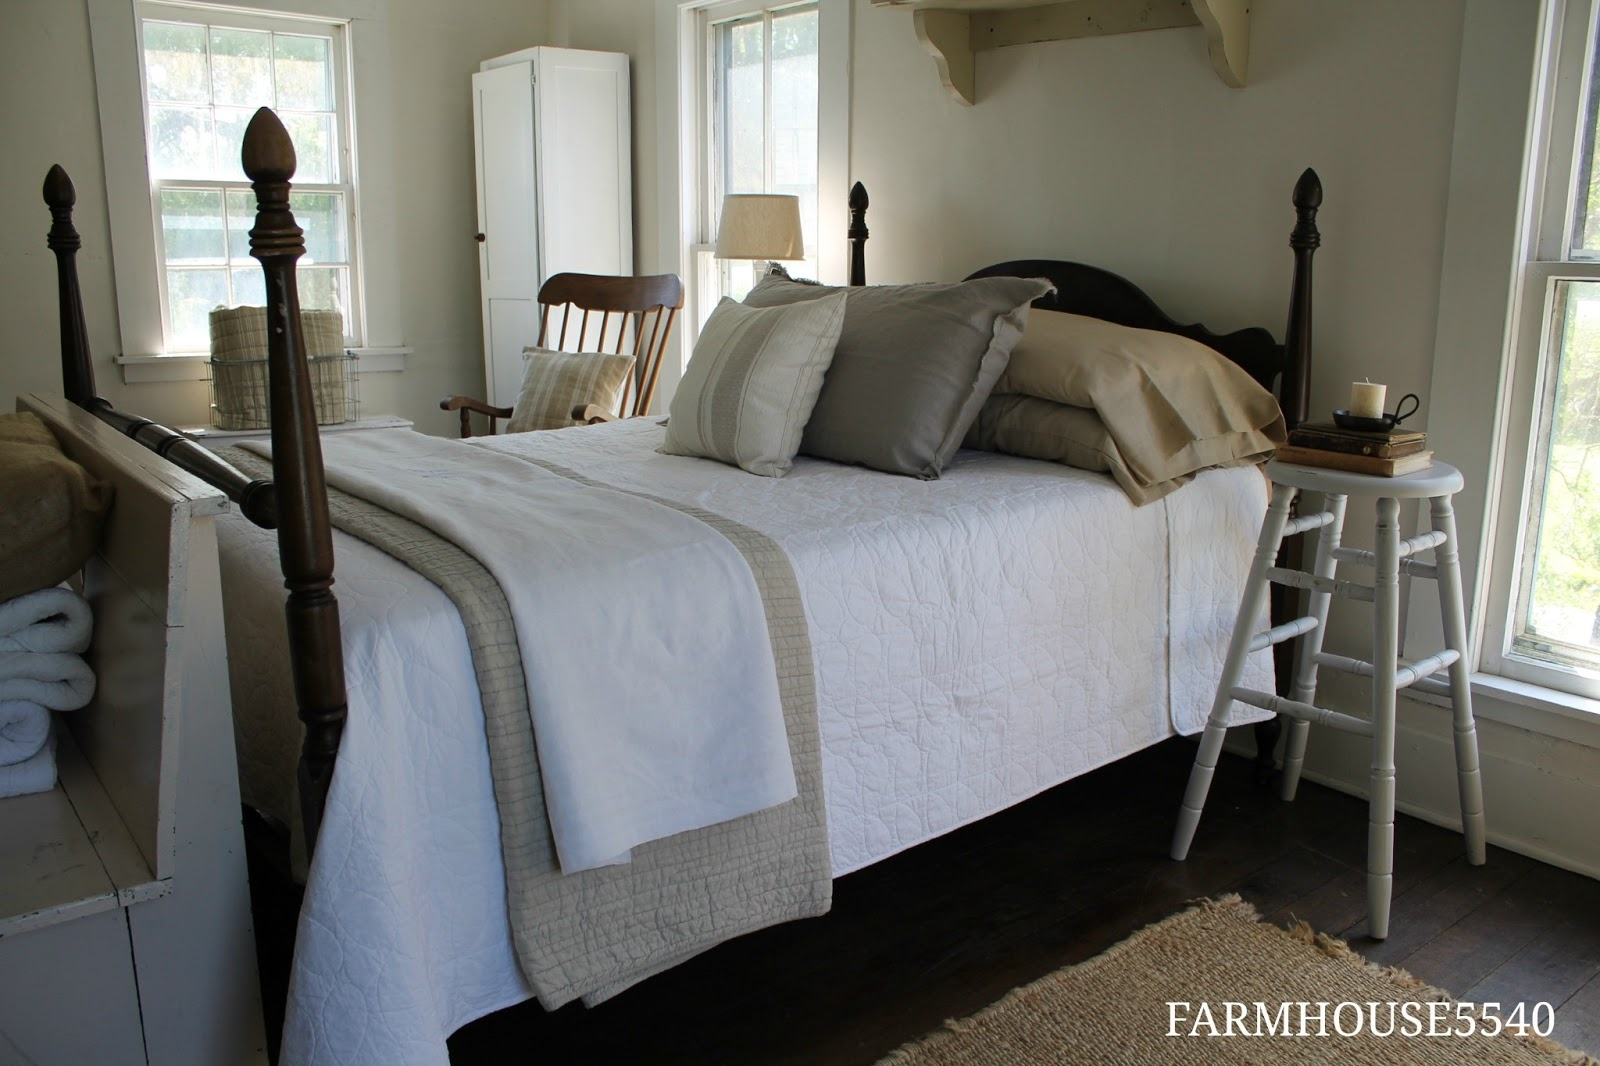 farmhouse guest bedroom farmhouse 5540 guest bedroom reveal 949